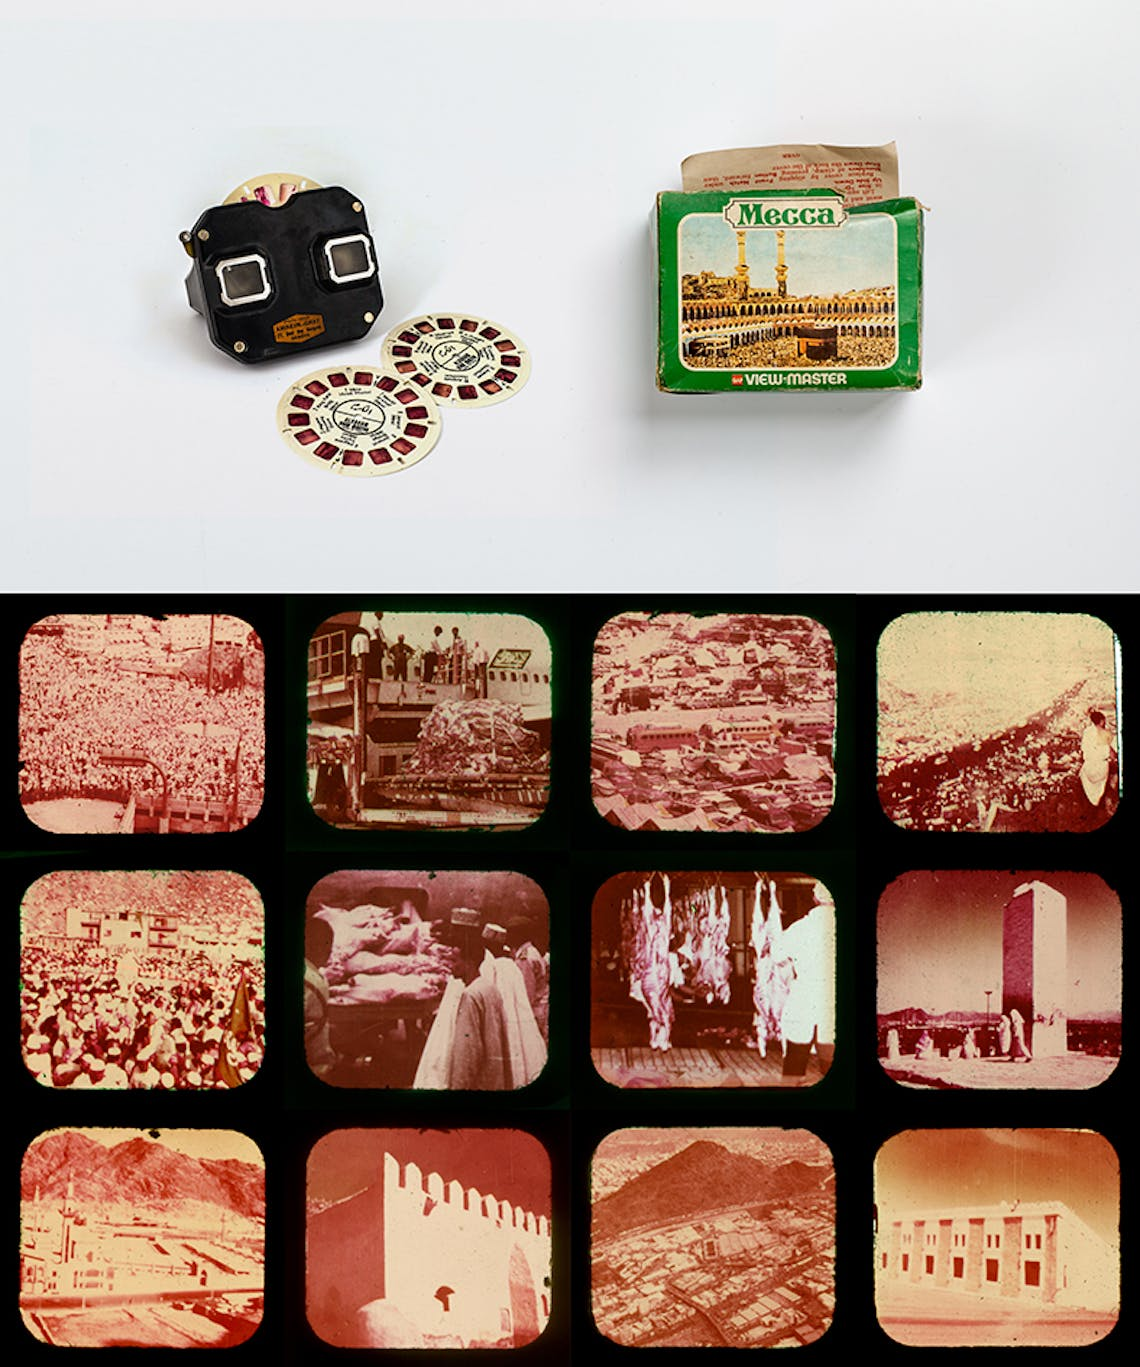 3. View Master I